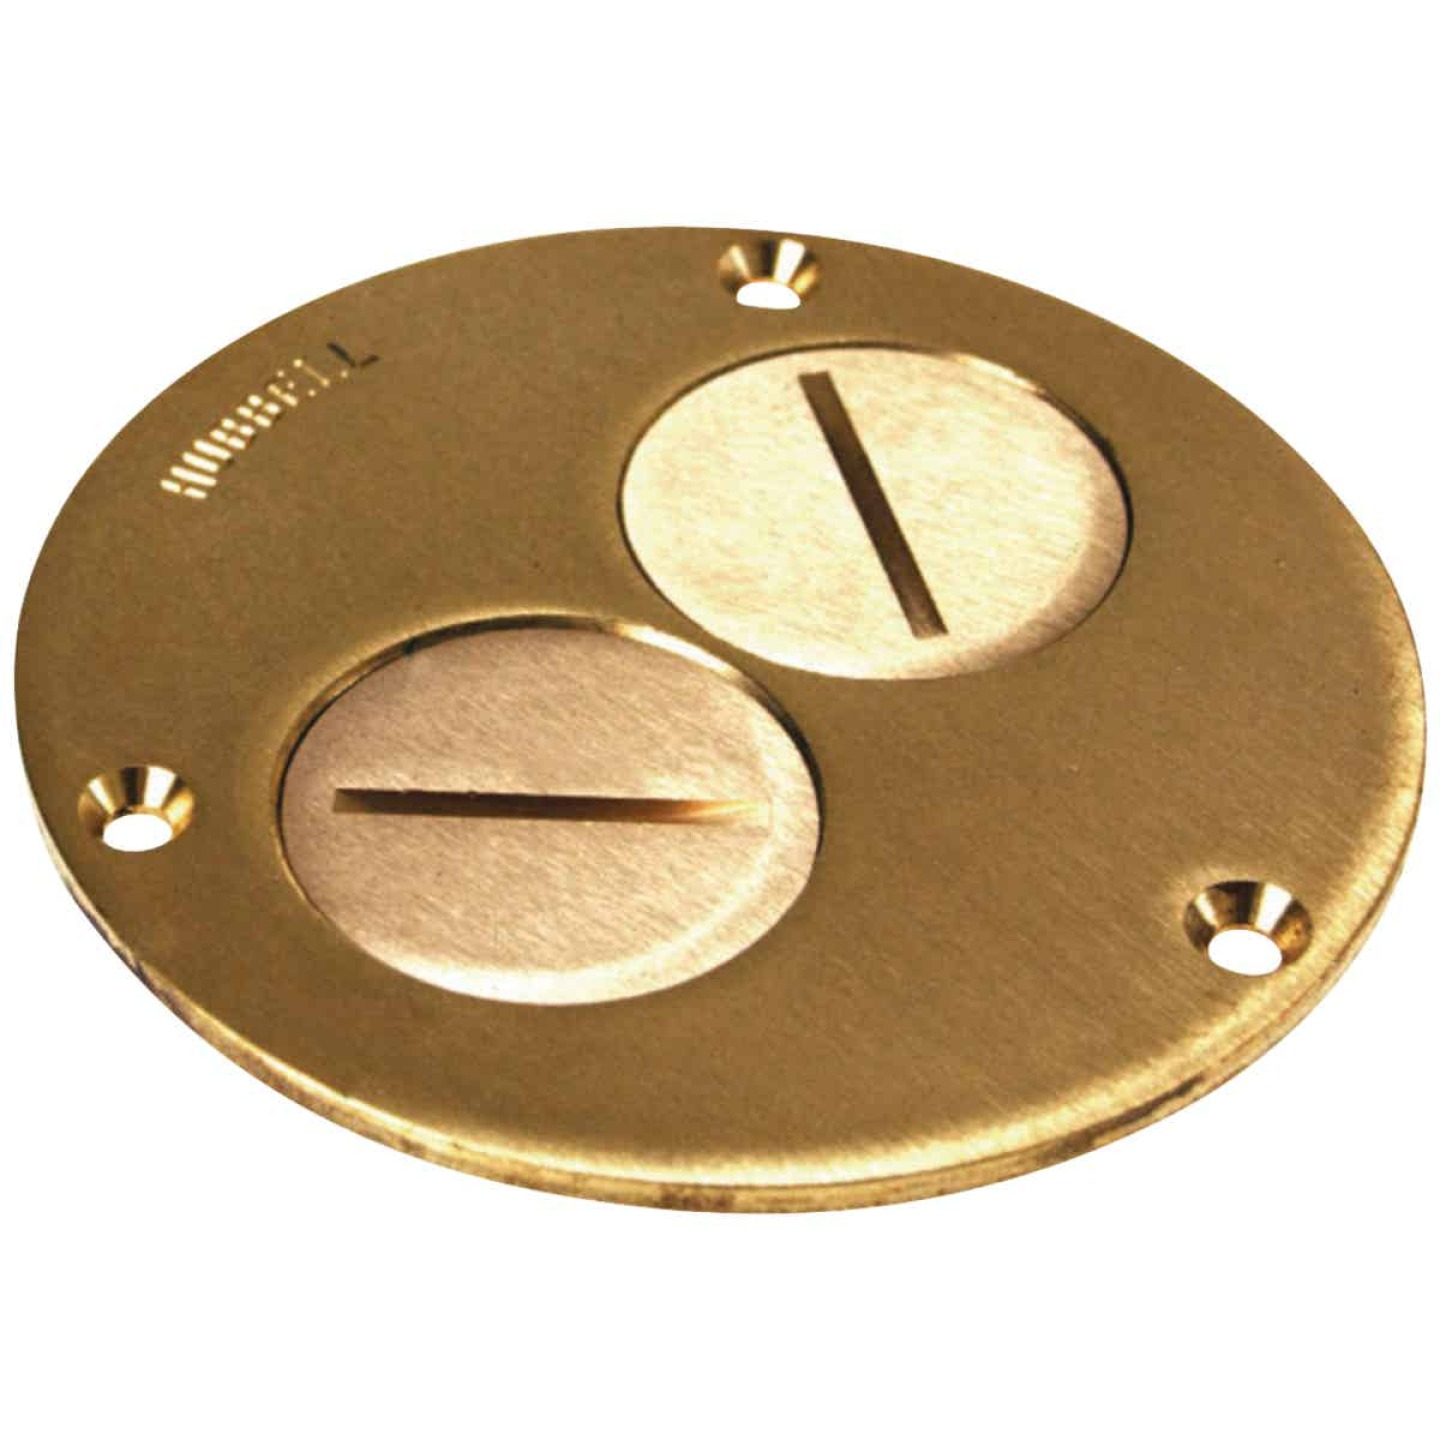 Steel City Brass Polished Brass 4-1/4 In. Floor Outlet Cover Plate Image 1